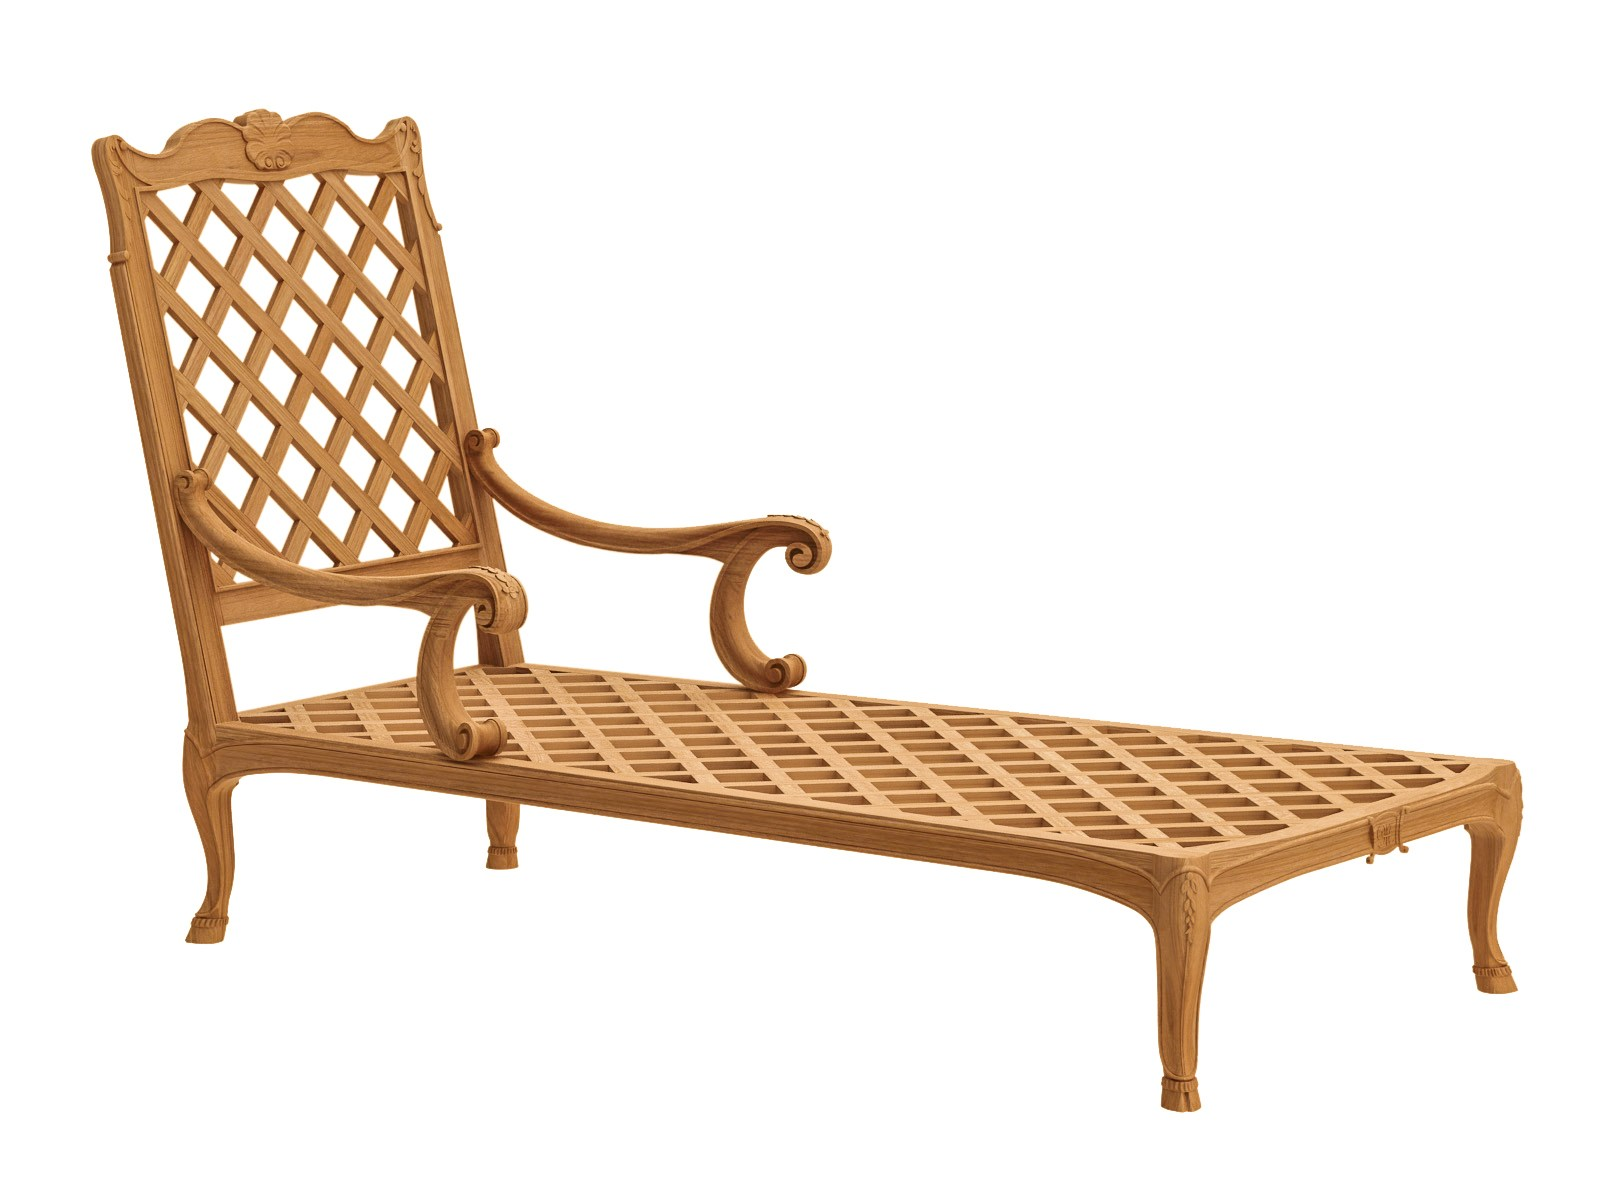 Fleur de lys chaise longue by astello design dominique for Chaises longues de jardin en teck